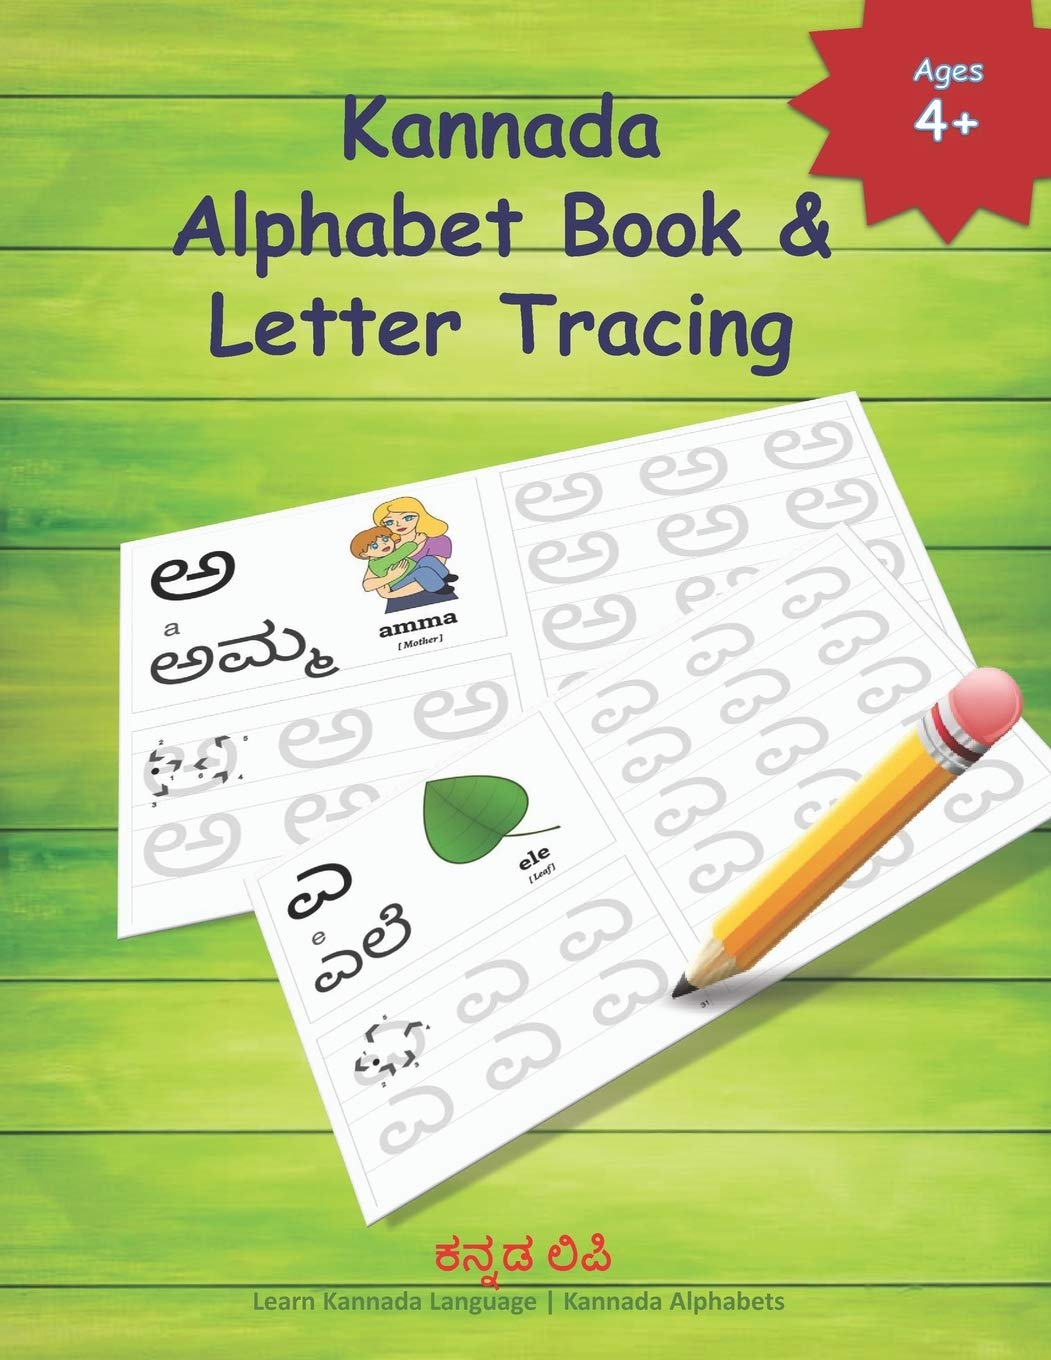 Buy Kannada Alphabet Book Letter Tracing Learn Kannada Alphabets Kannada Alphabets Writing Practice Workbook With Words And Pictures 1 Book Online At Low Prices In India Kannada Alphabet Book